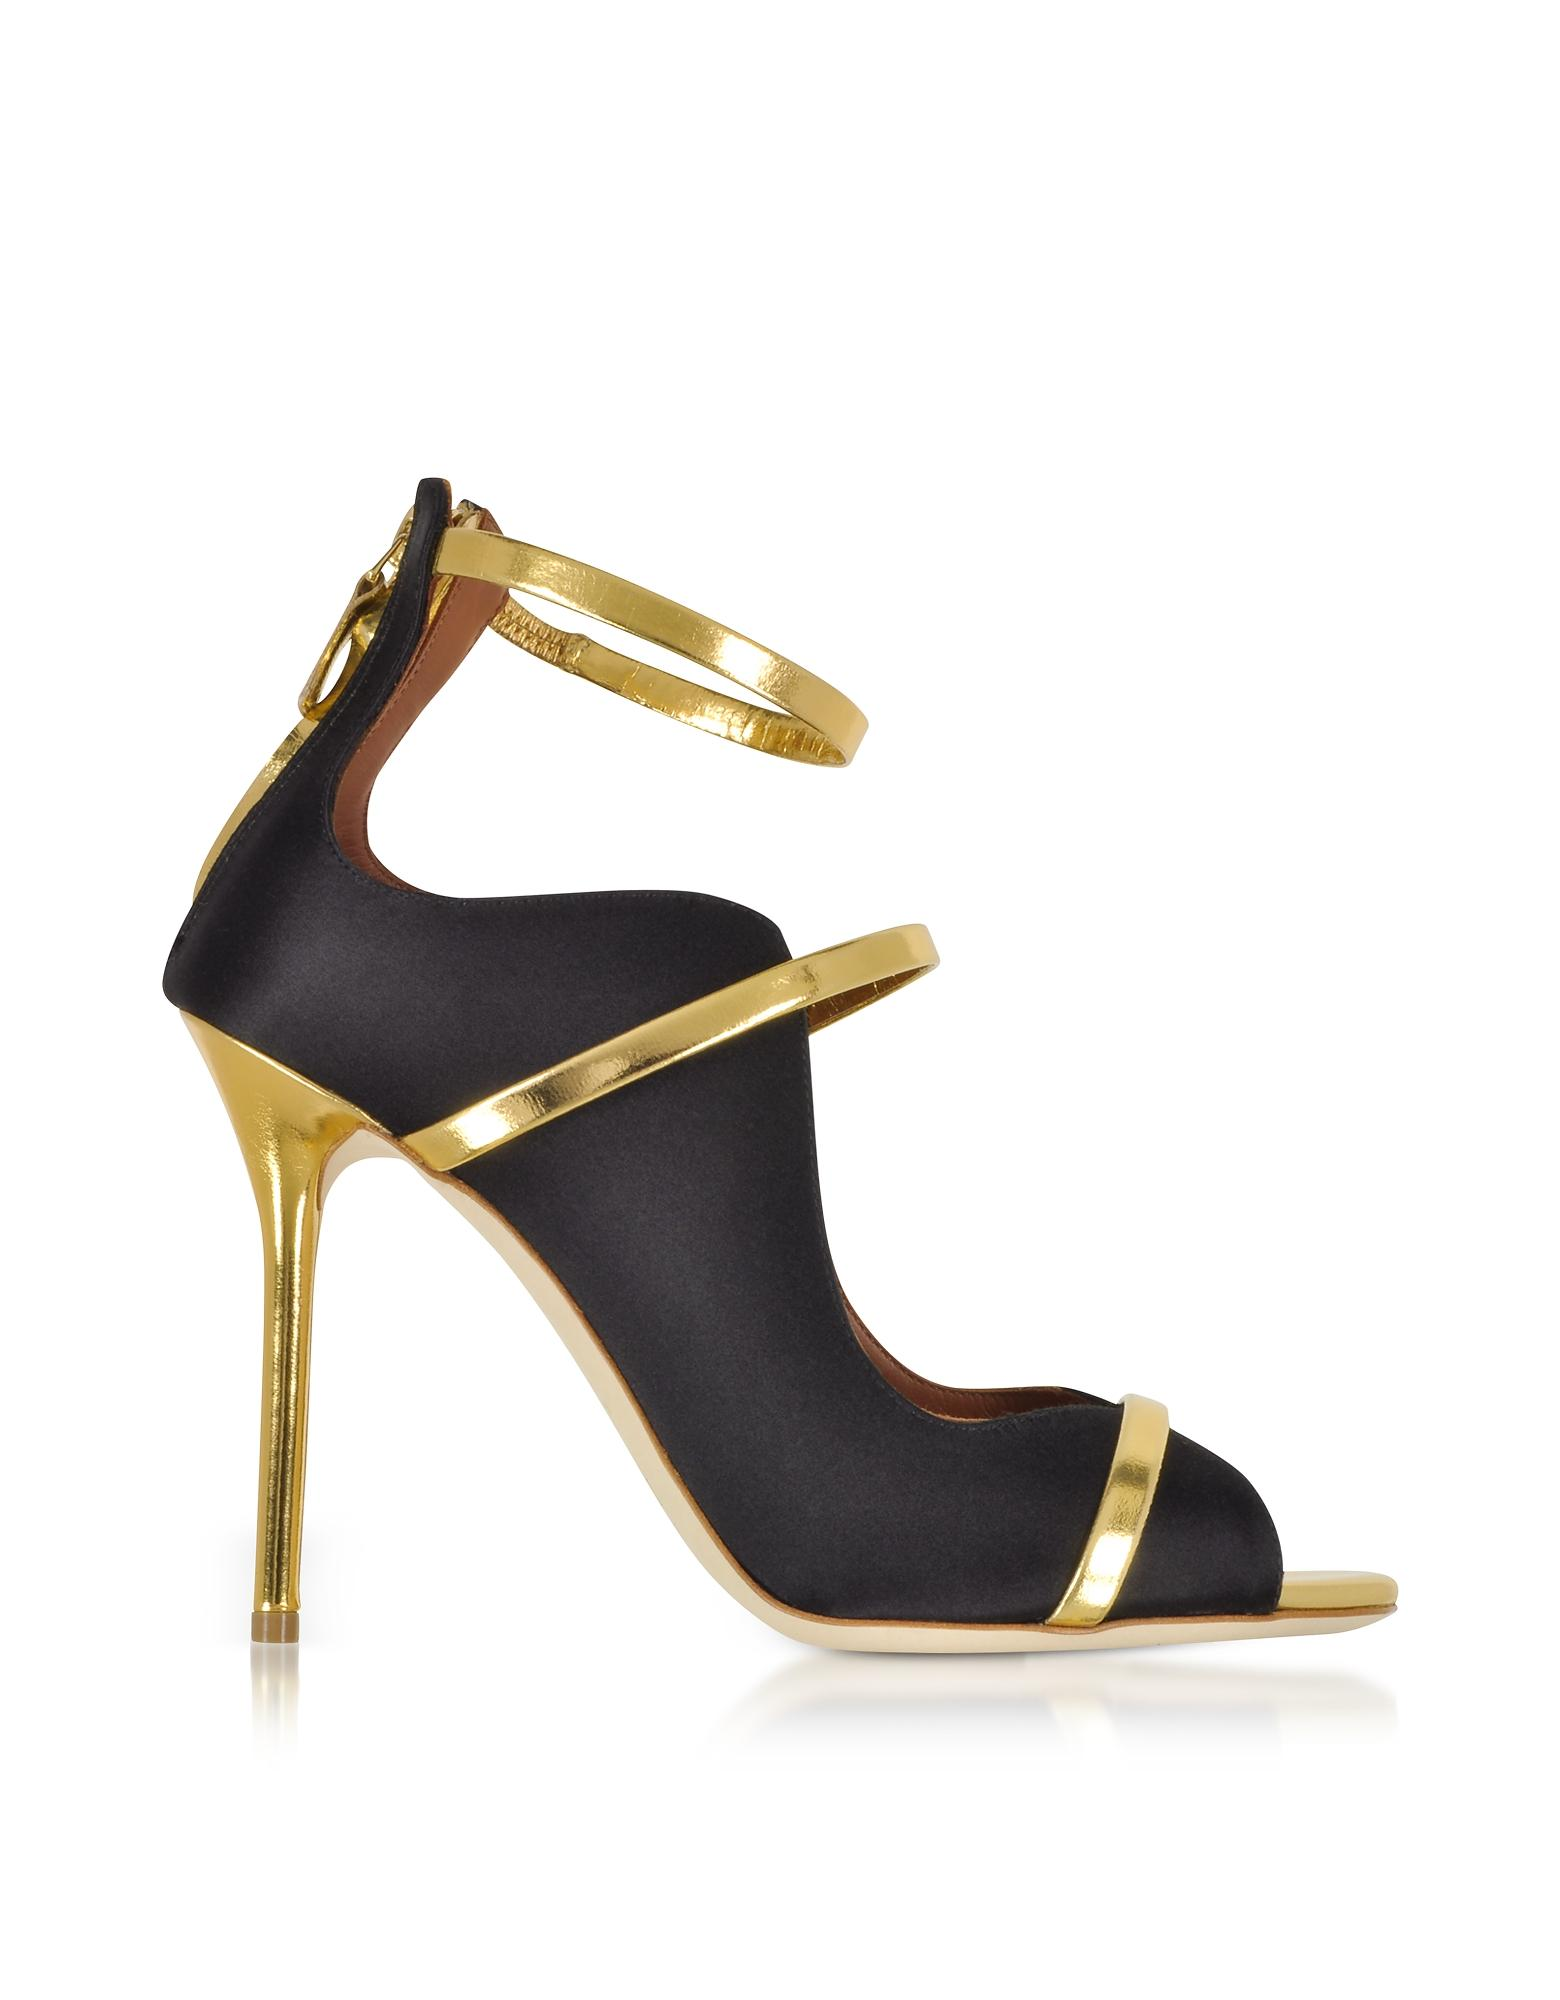 0f290a17579 Lyst - Malone Souliers Mika Satin Sandals in Black - Save 49%